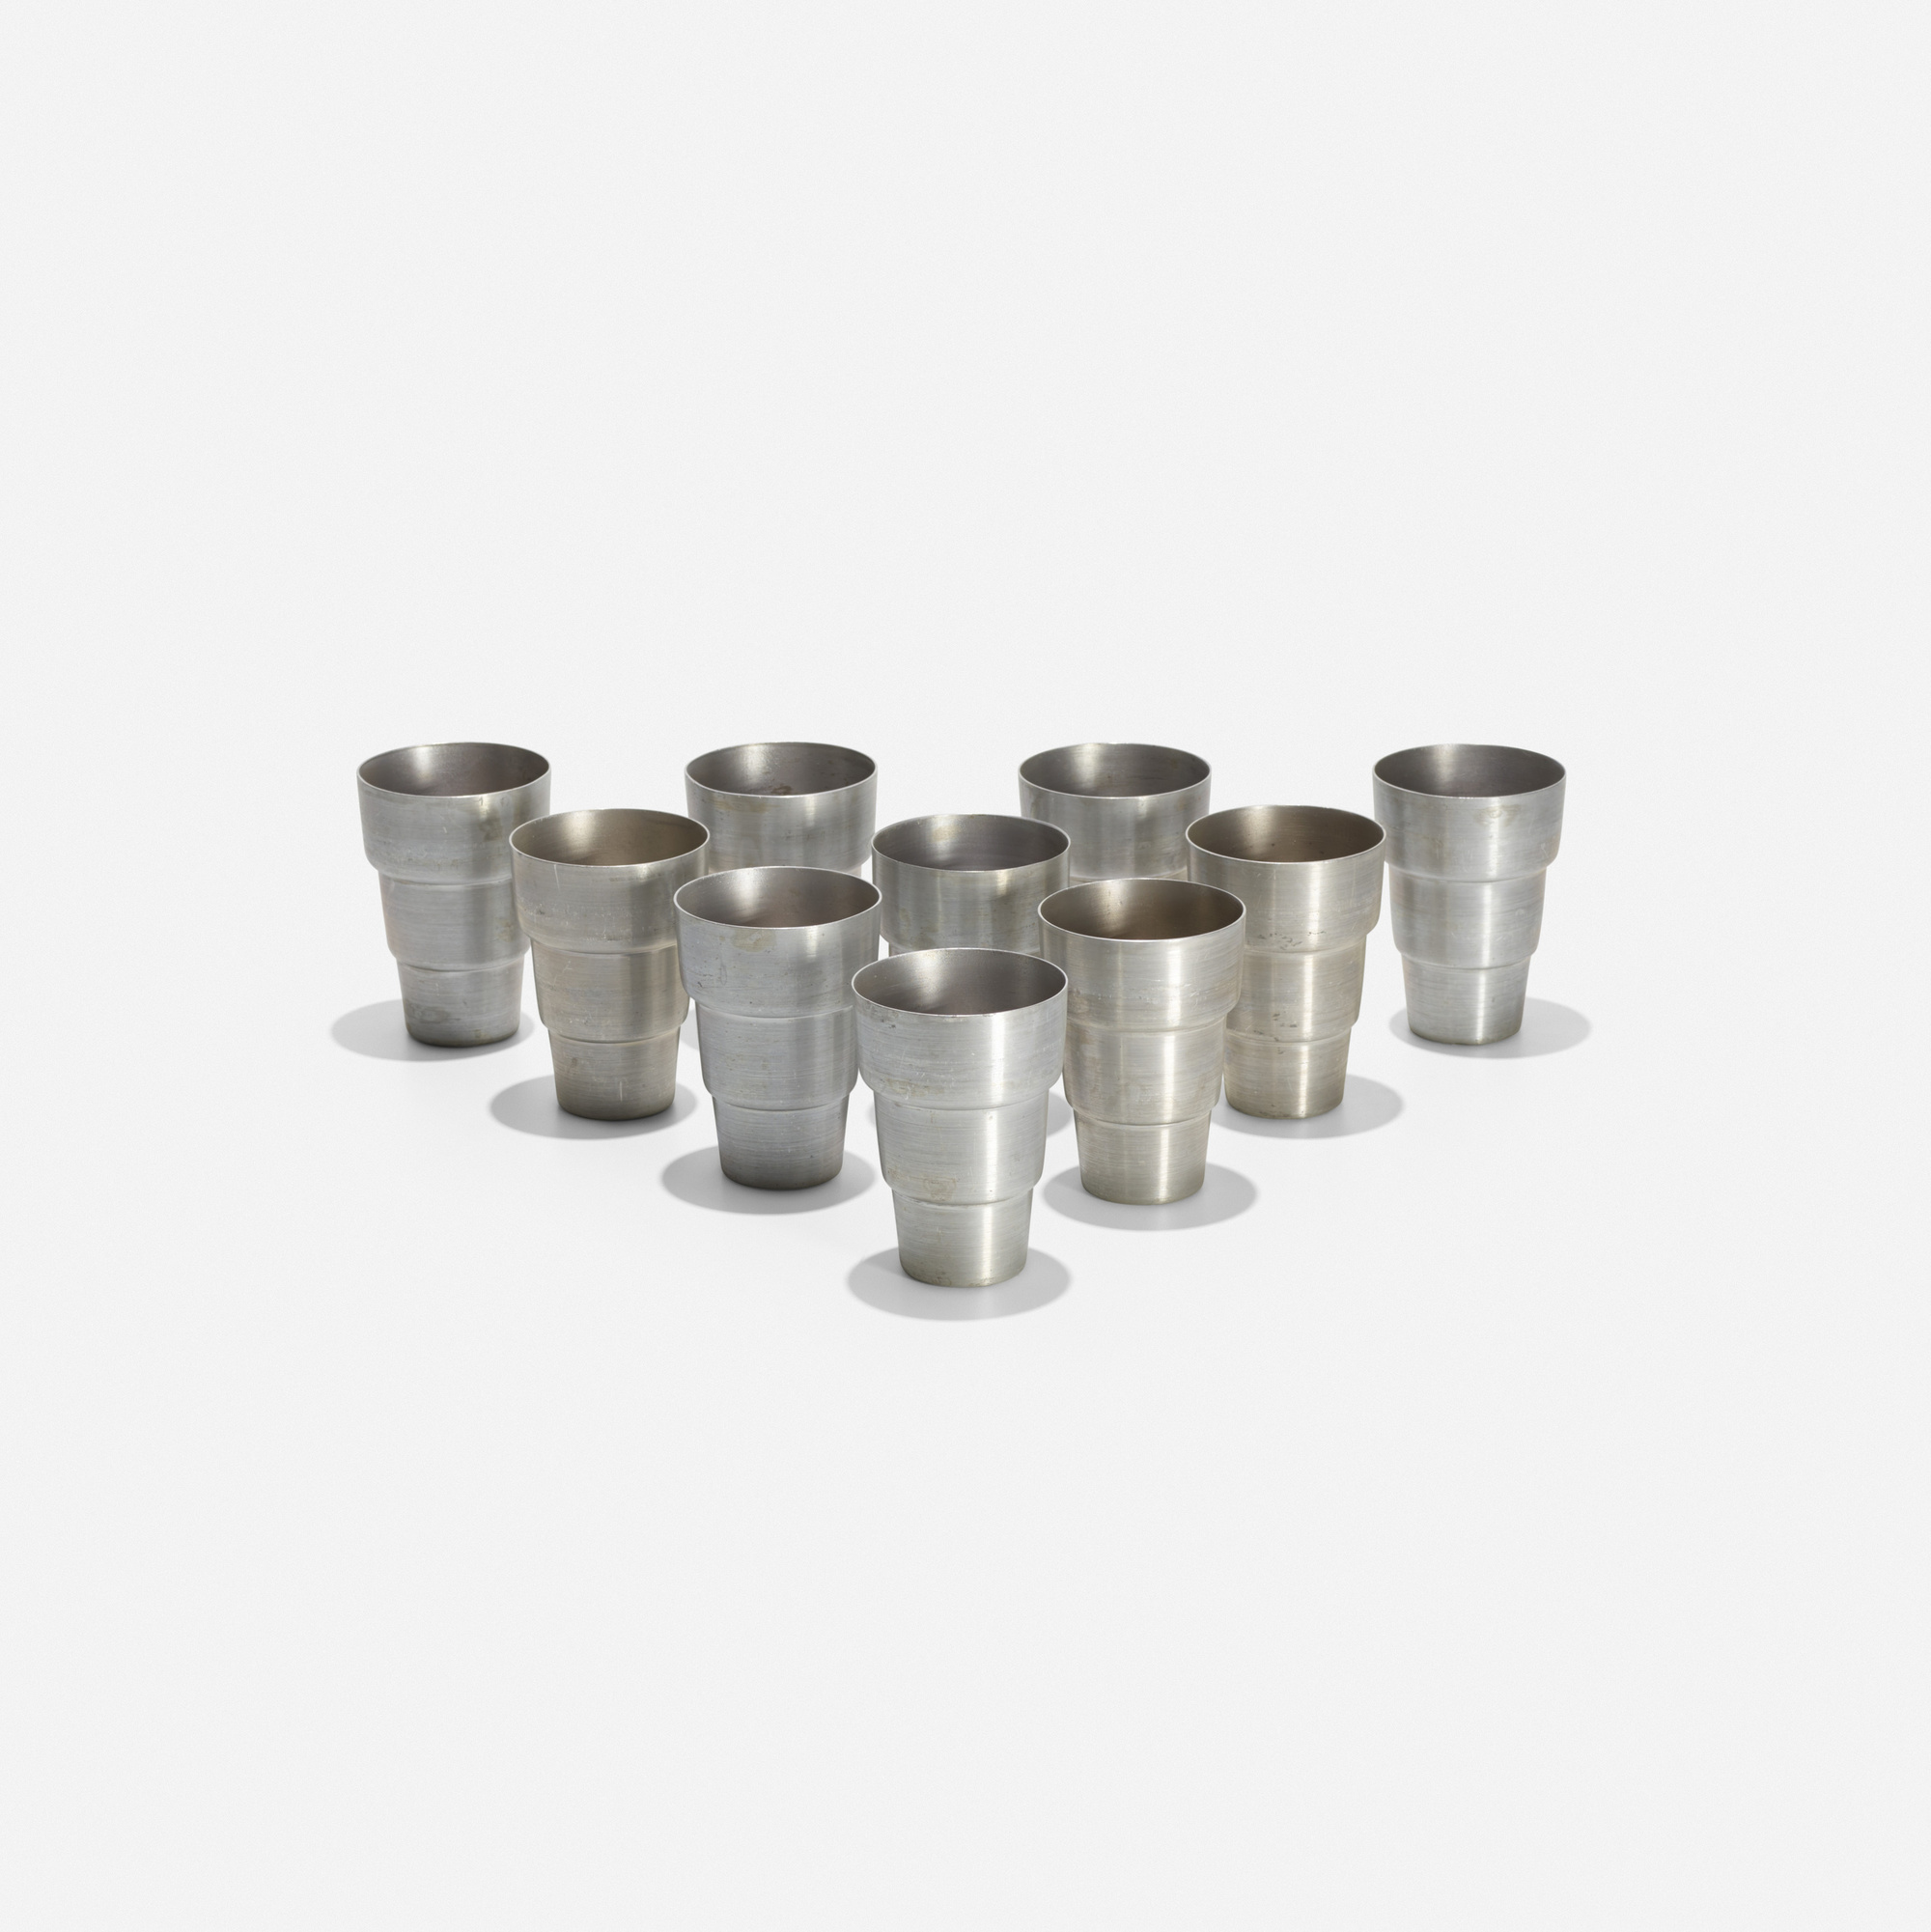 178: Russel Wright / cups, set of ten (1 of 2)